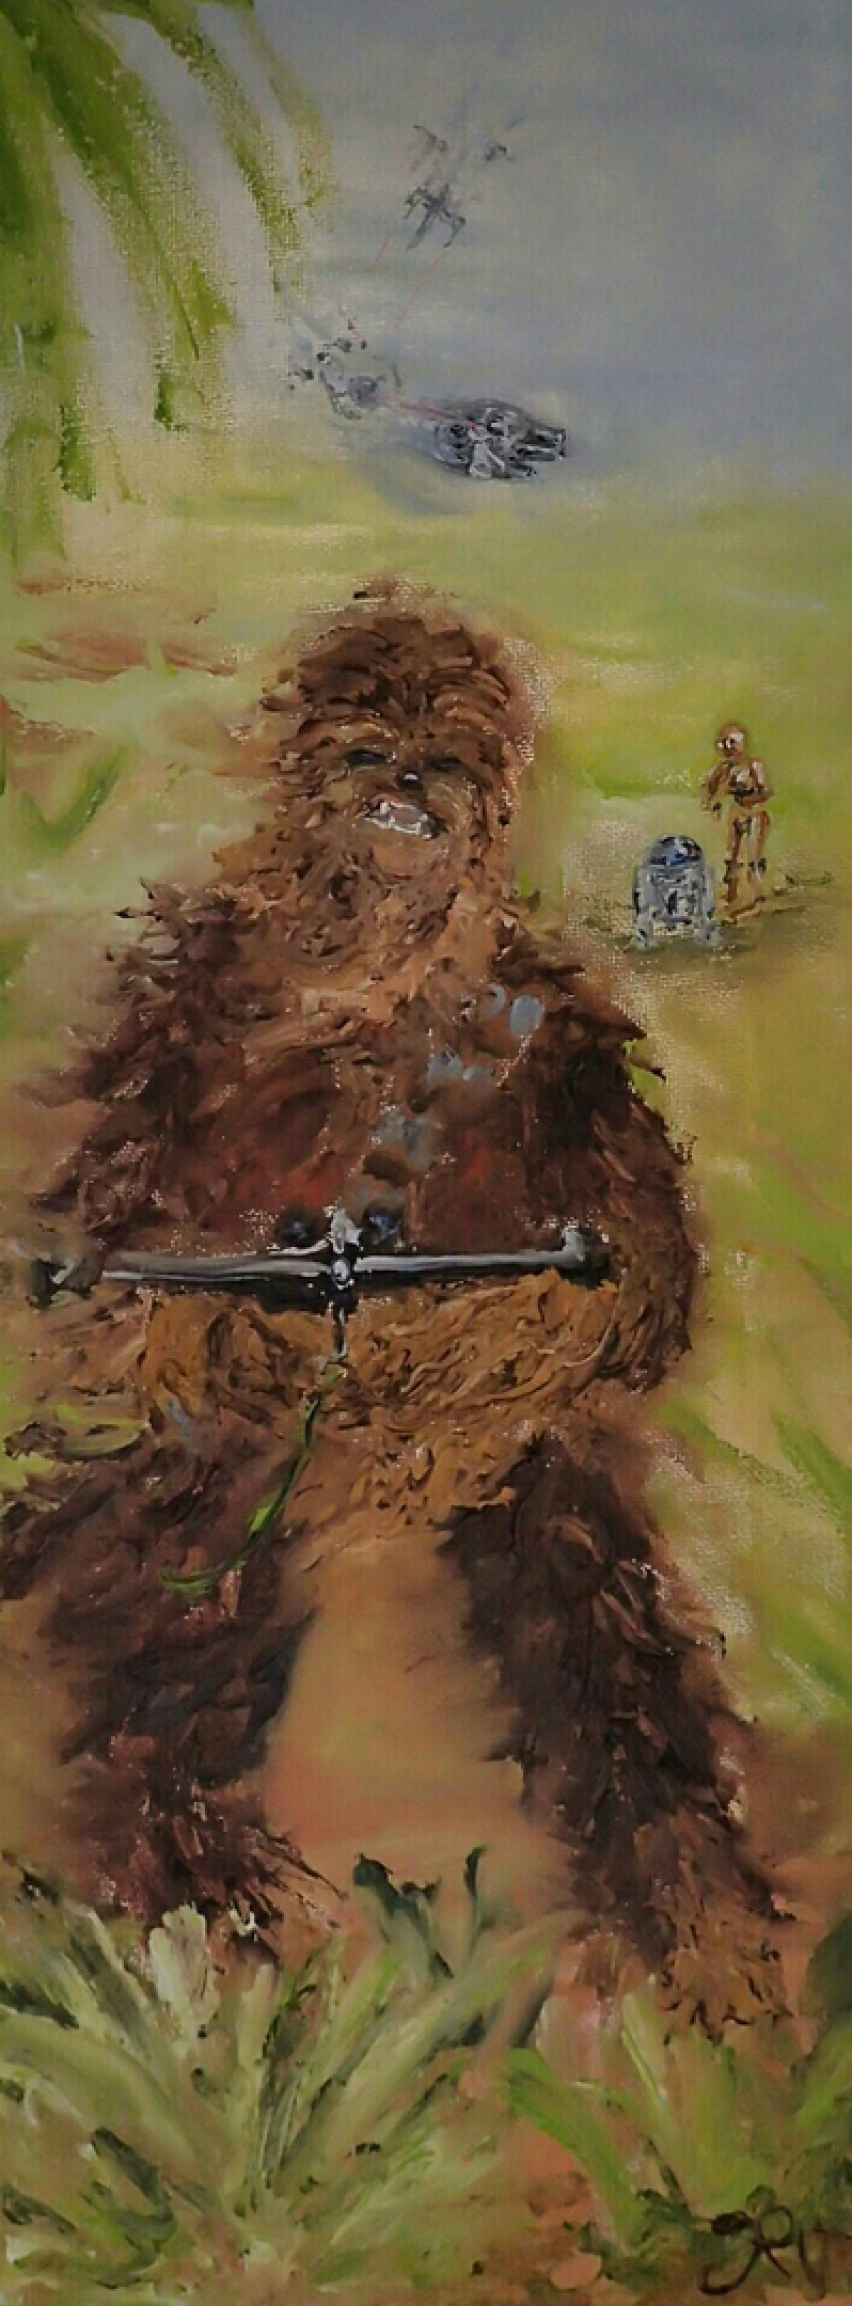 Star Wars, Chewbacca, Wookie, R2-D2, C-3PO, Millennium Falcon, X-Wing Fighter, The Force, Rebels, Rebellion, TIE